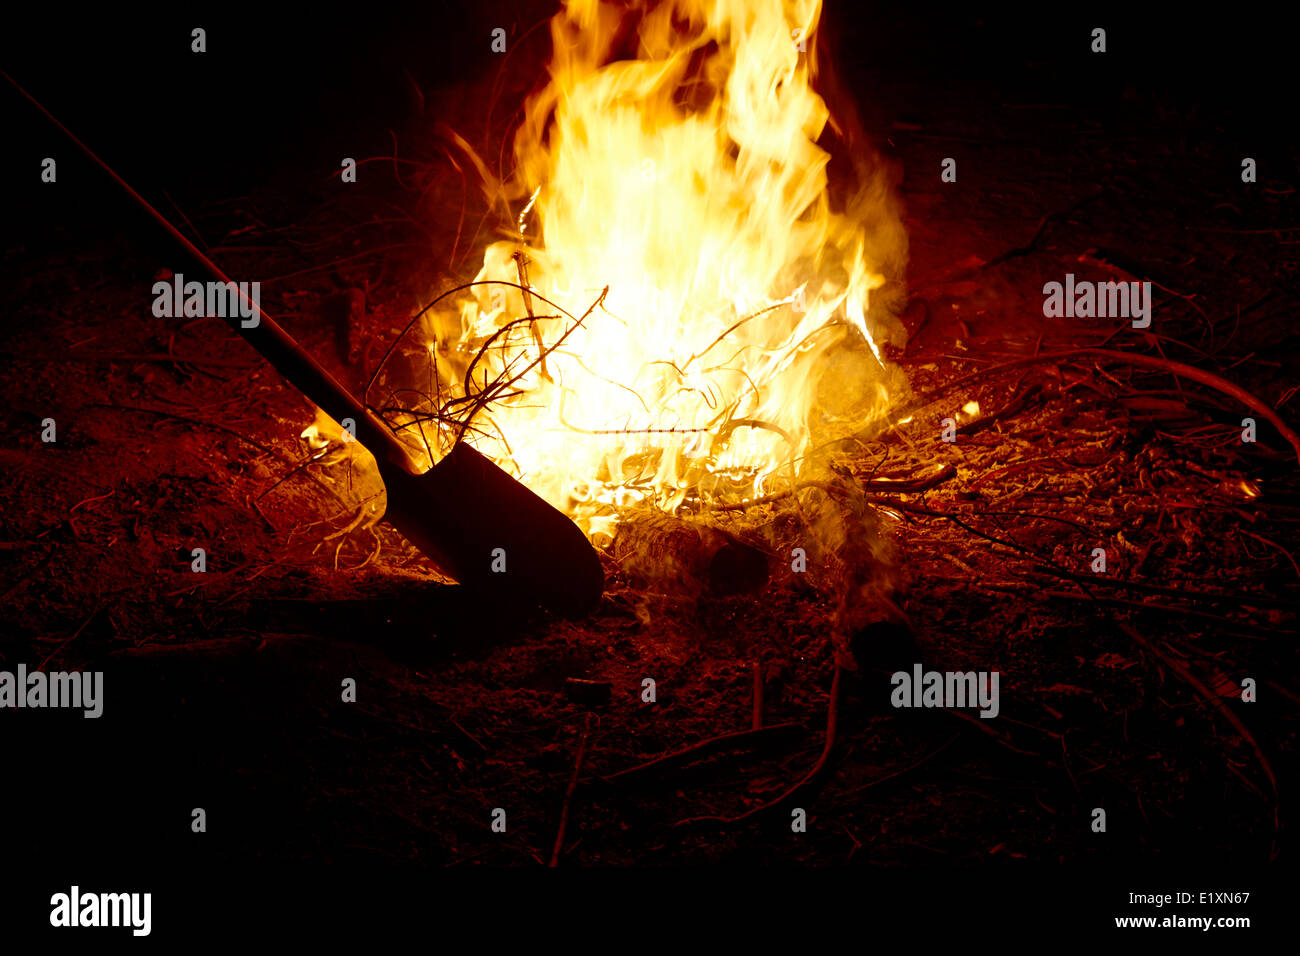 putting out with shovel a burning eucalyptus wood in an intense camp fire los pellines chile - Stock Image